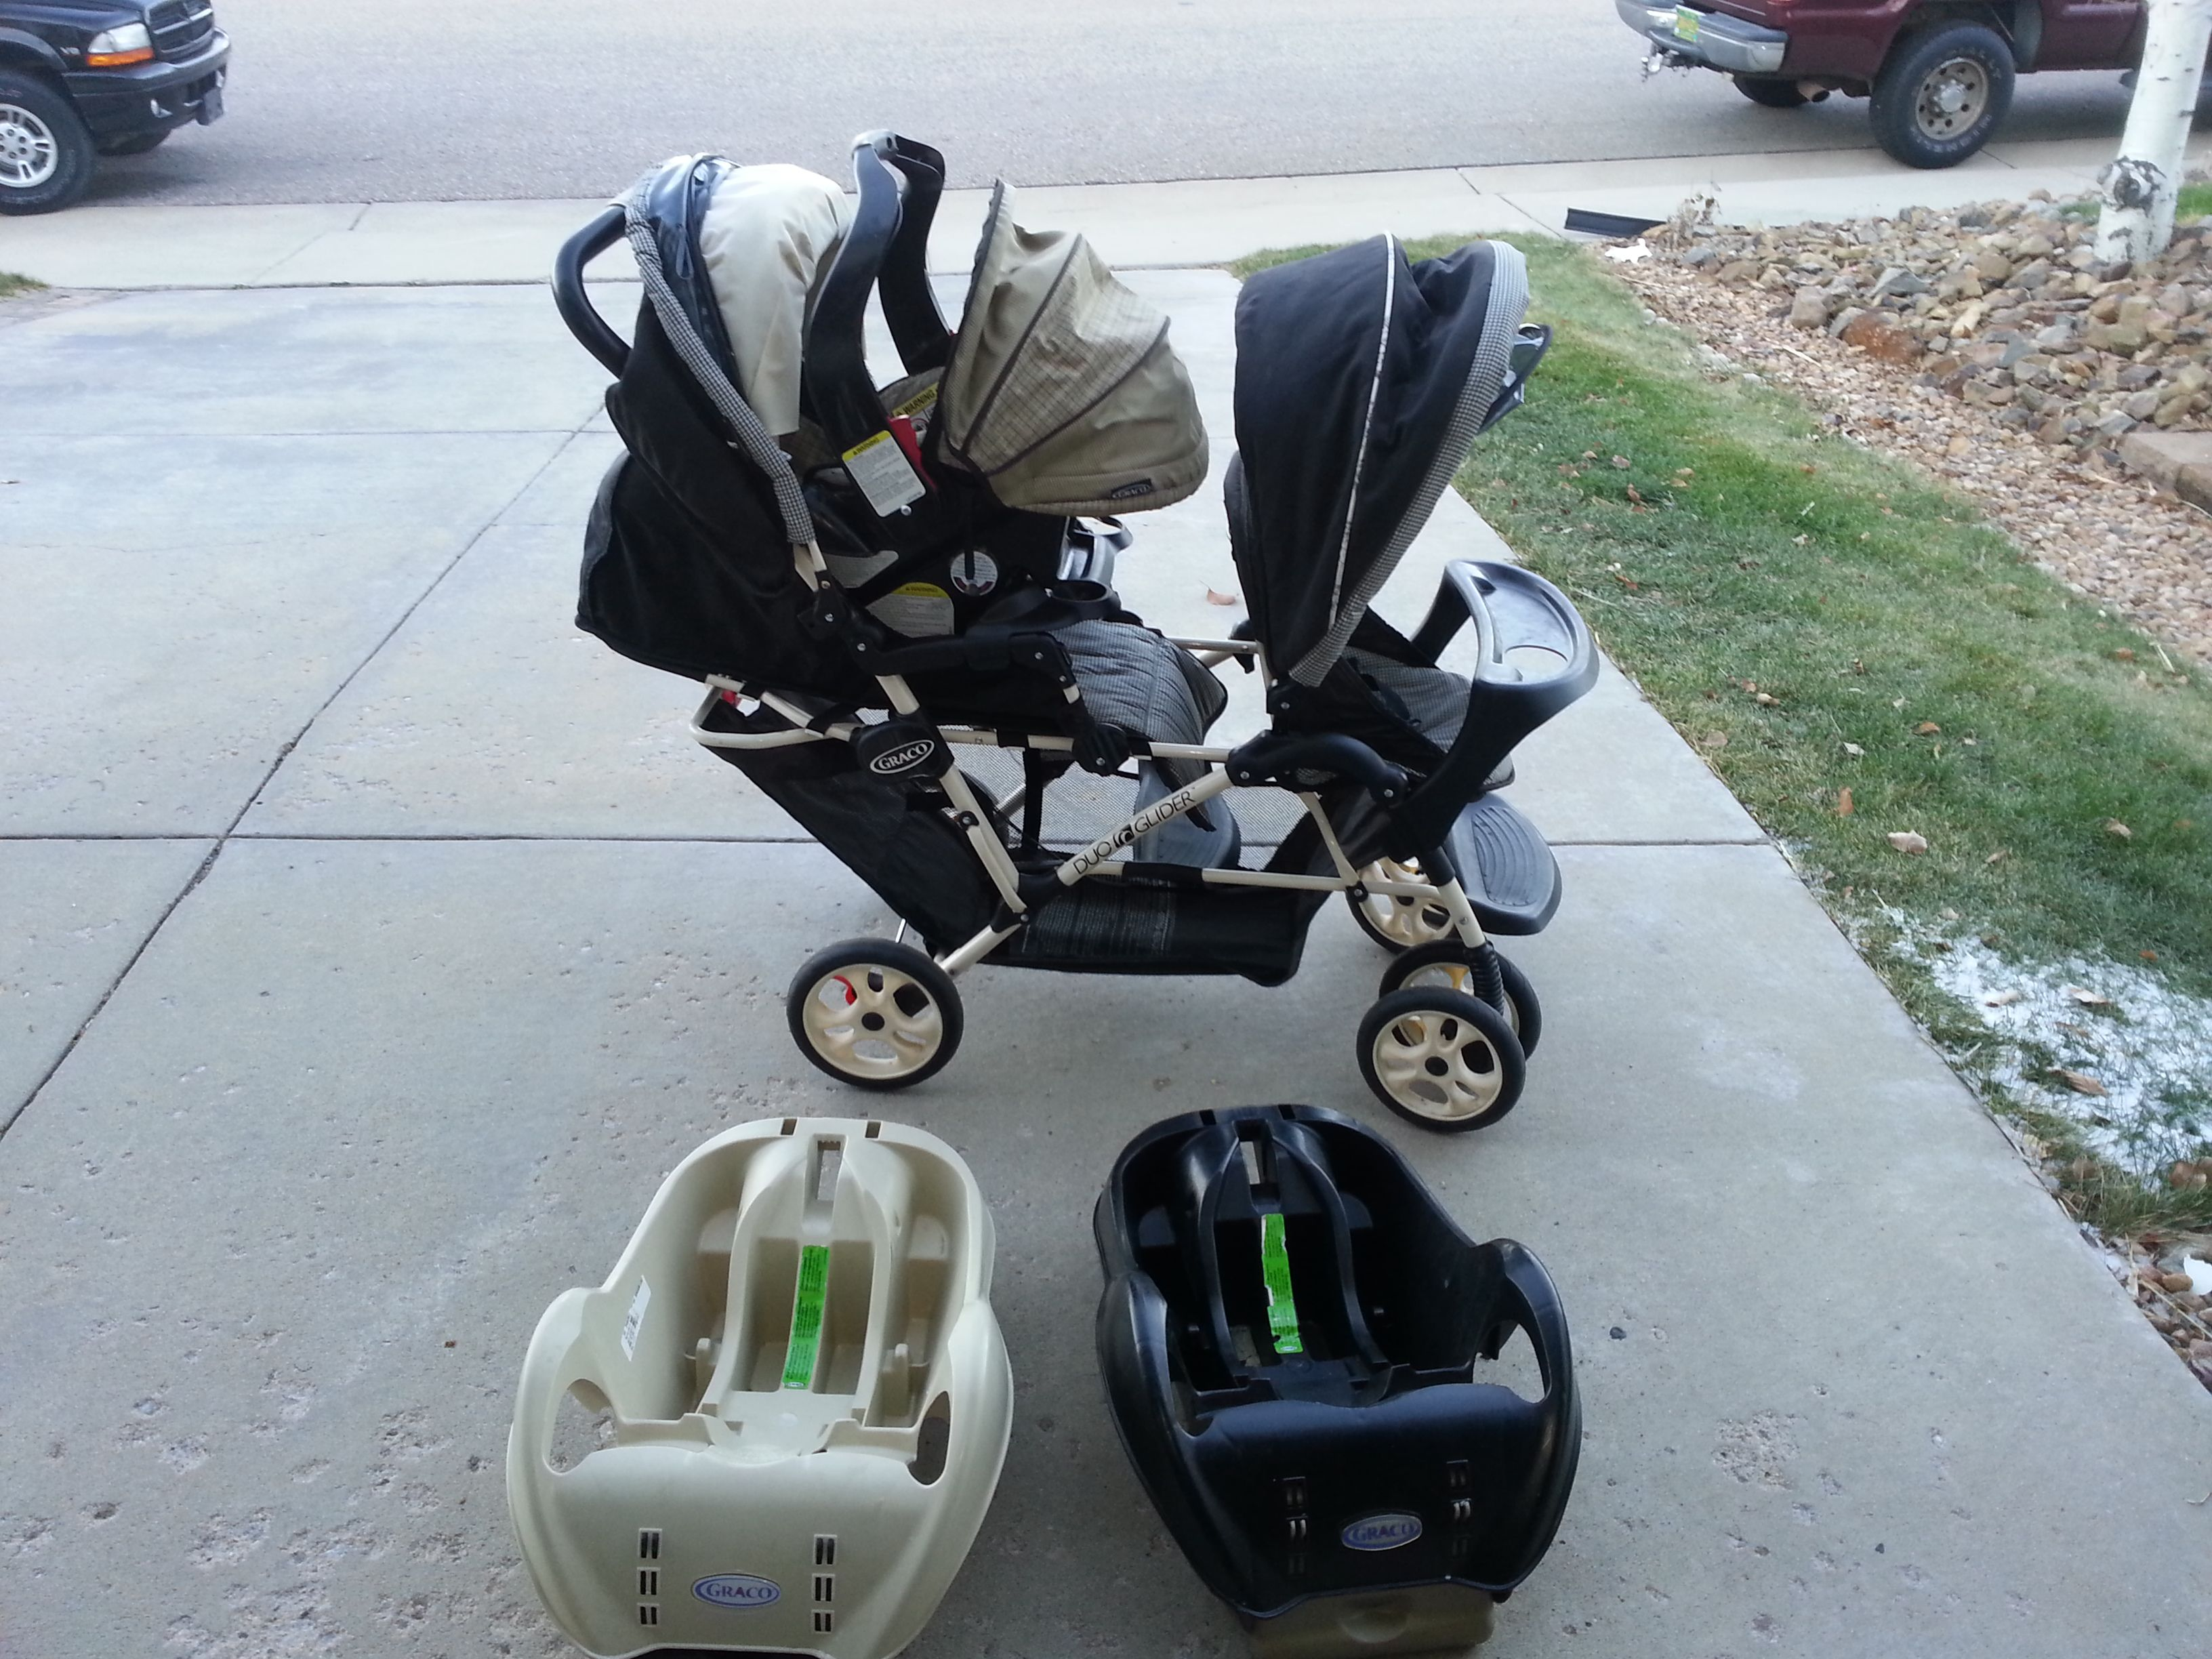 Graco DuoGlider double stroller with car seat and two car seat bases